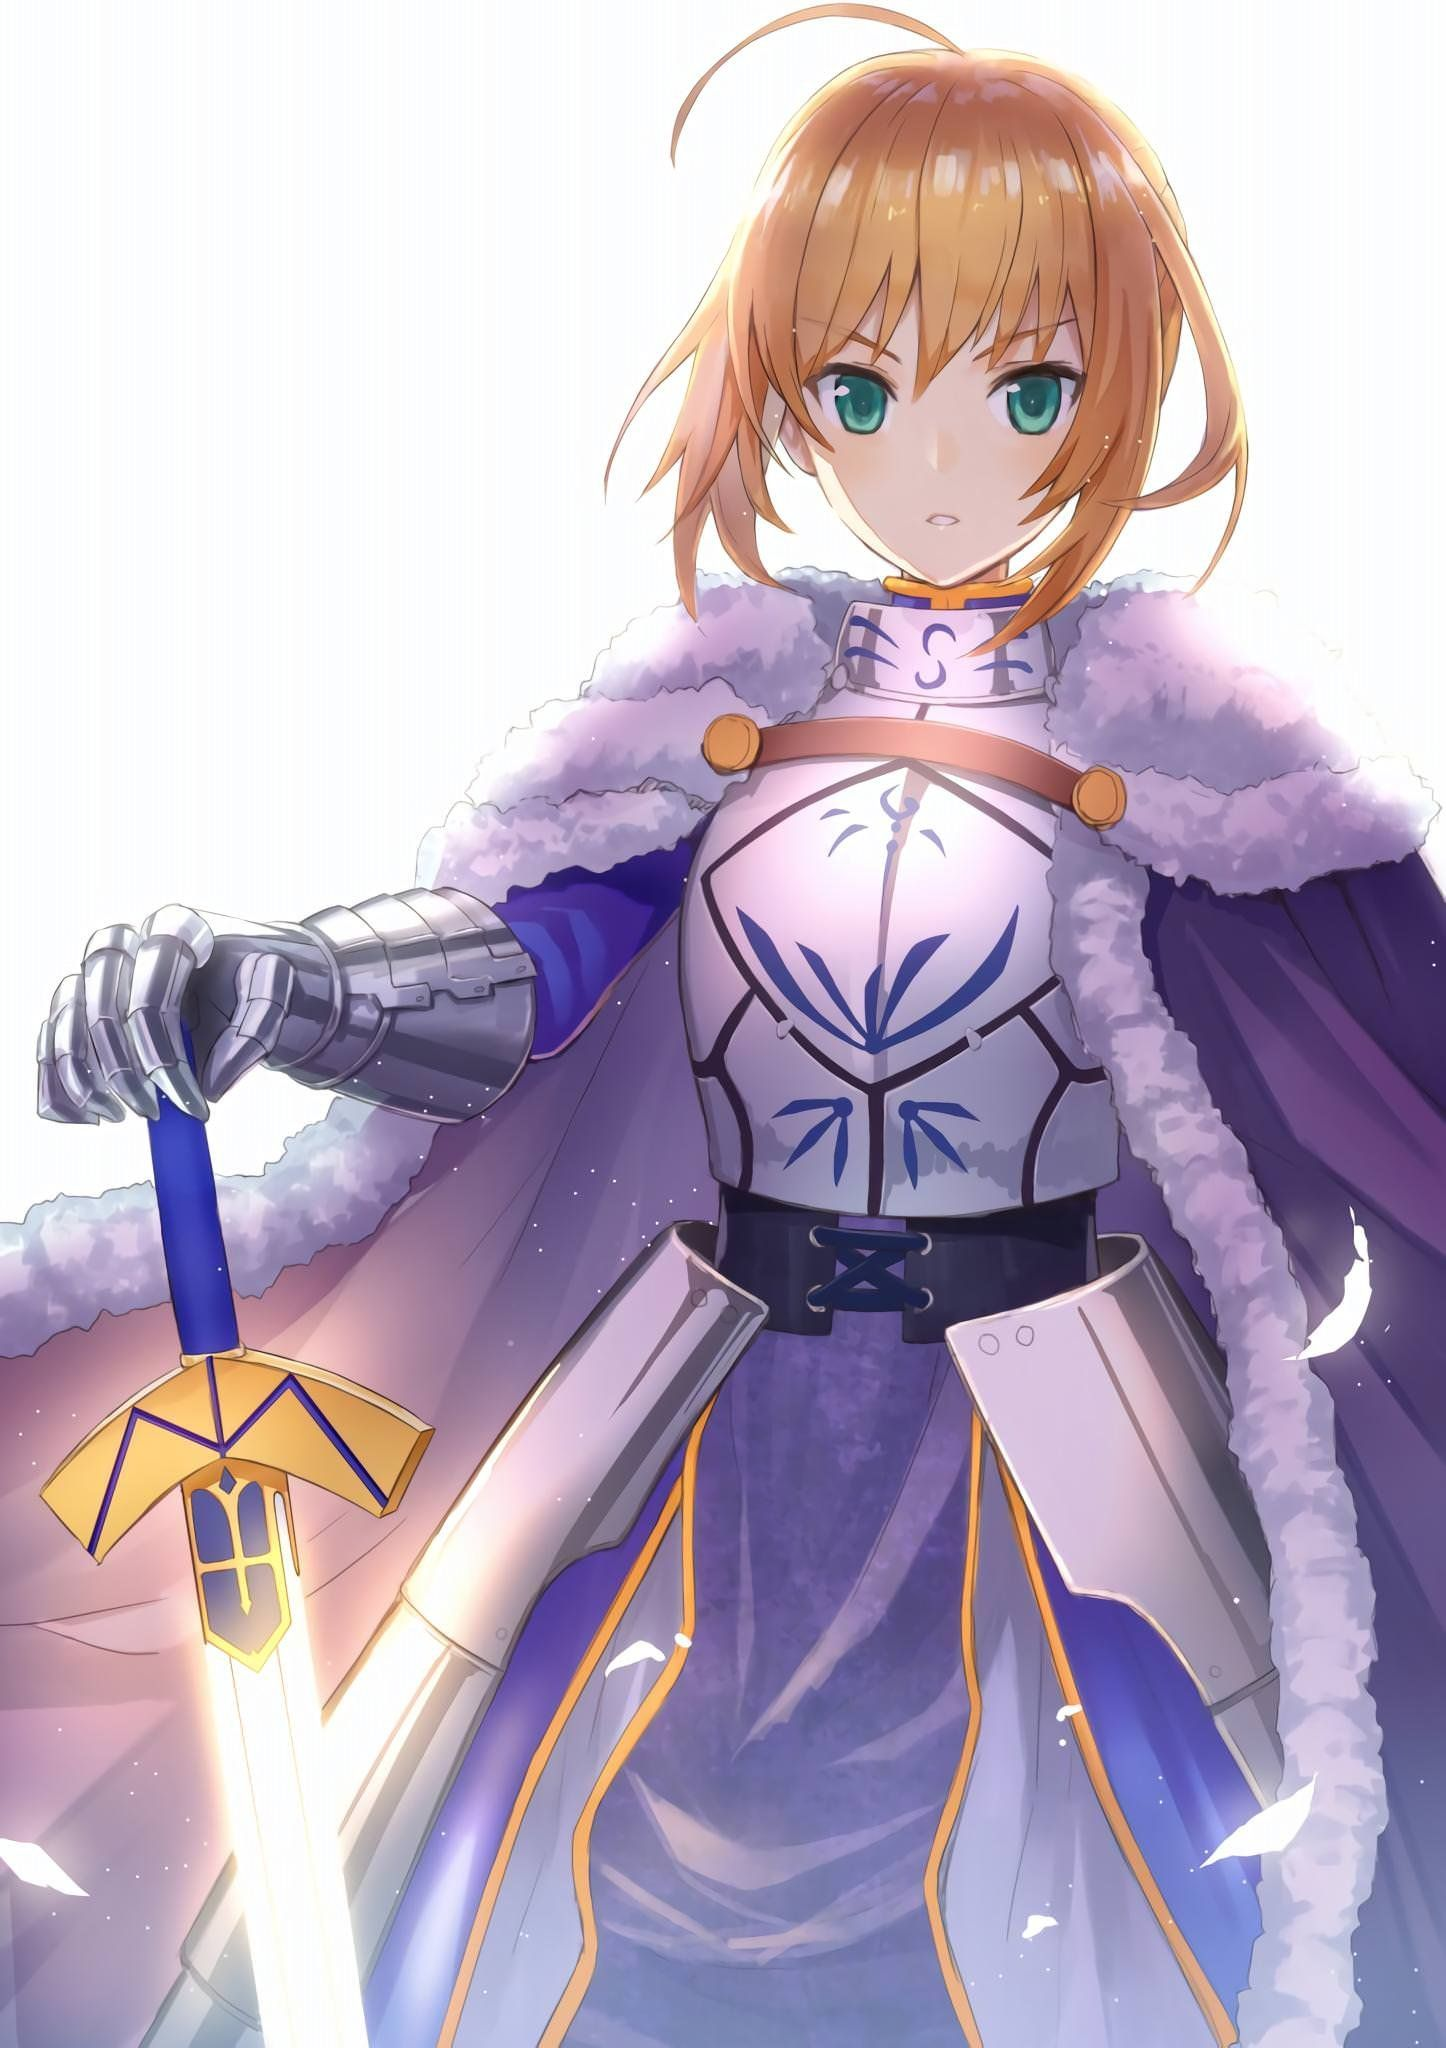 The King of Knights Saber Fate anime series, Fate stay